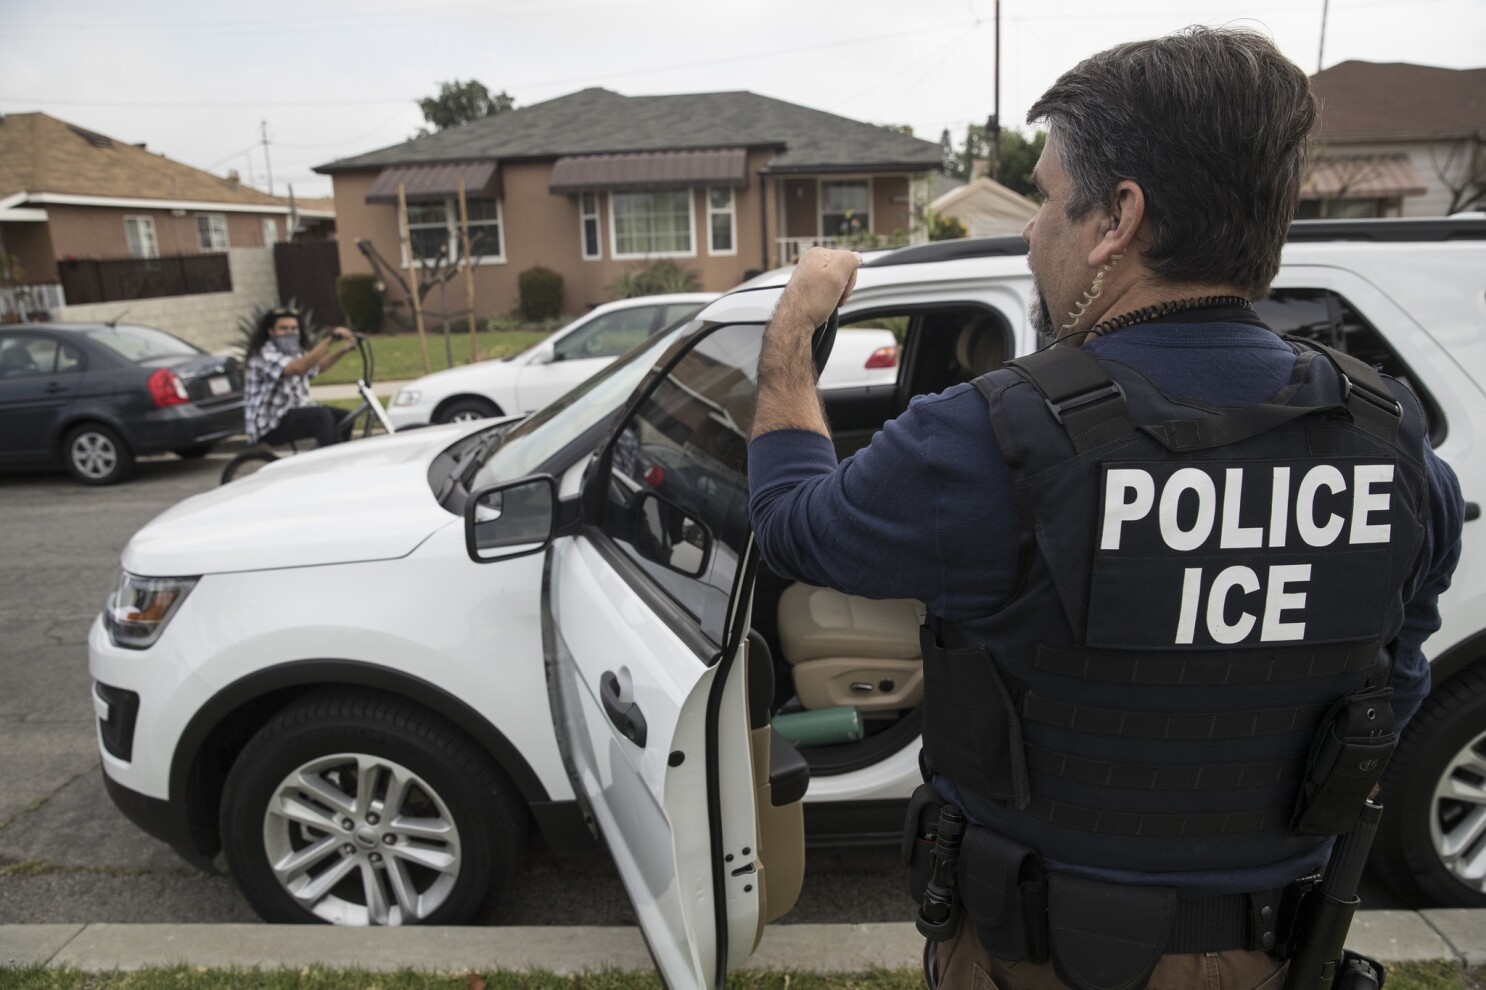 Trump called Oakland mayor a 'disgrace' for revealing ICE raids. Then he did the same thing - Los Angeles Tim